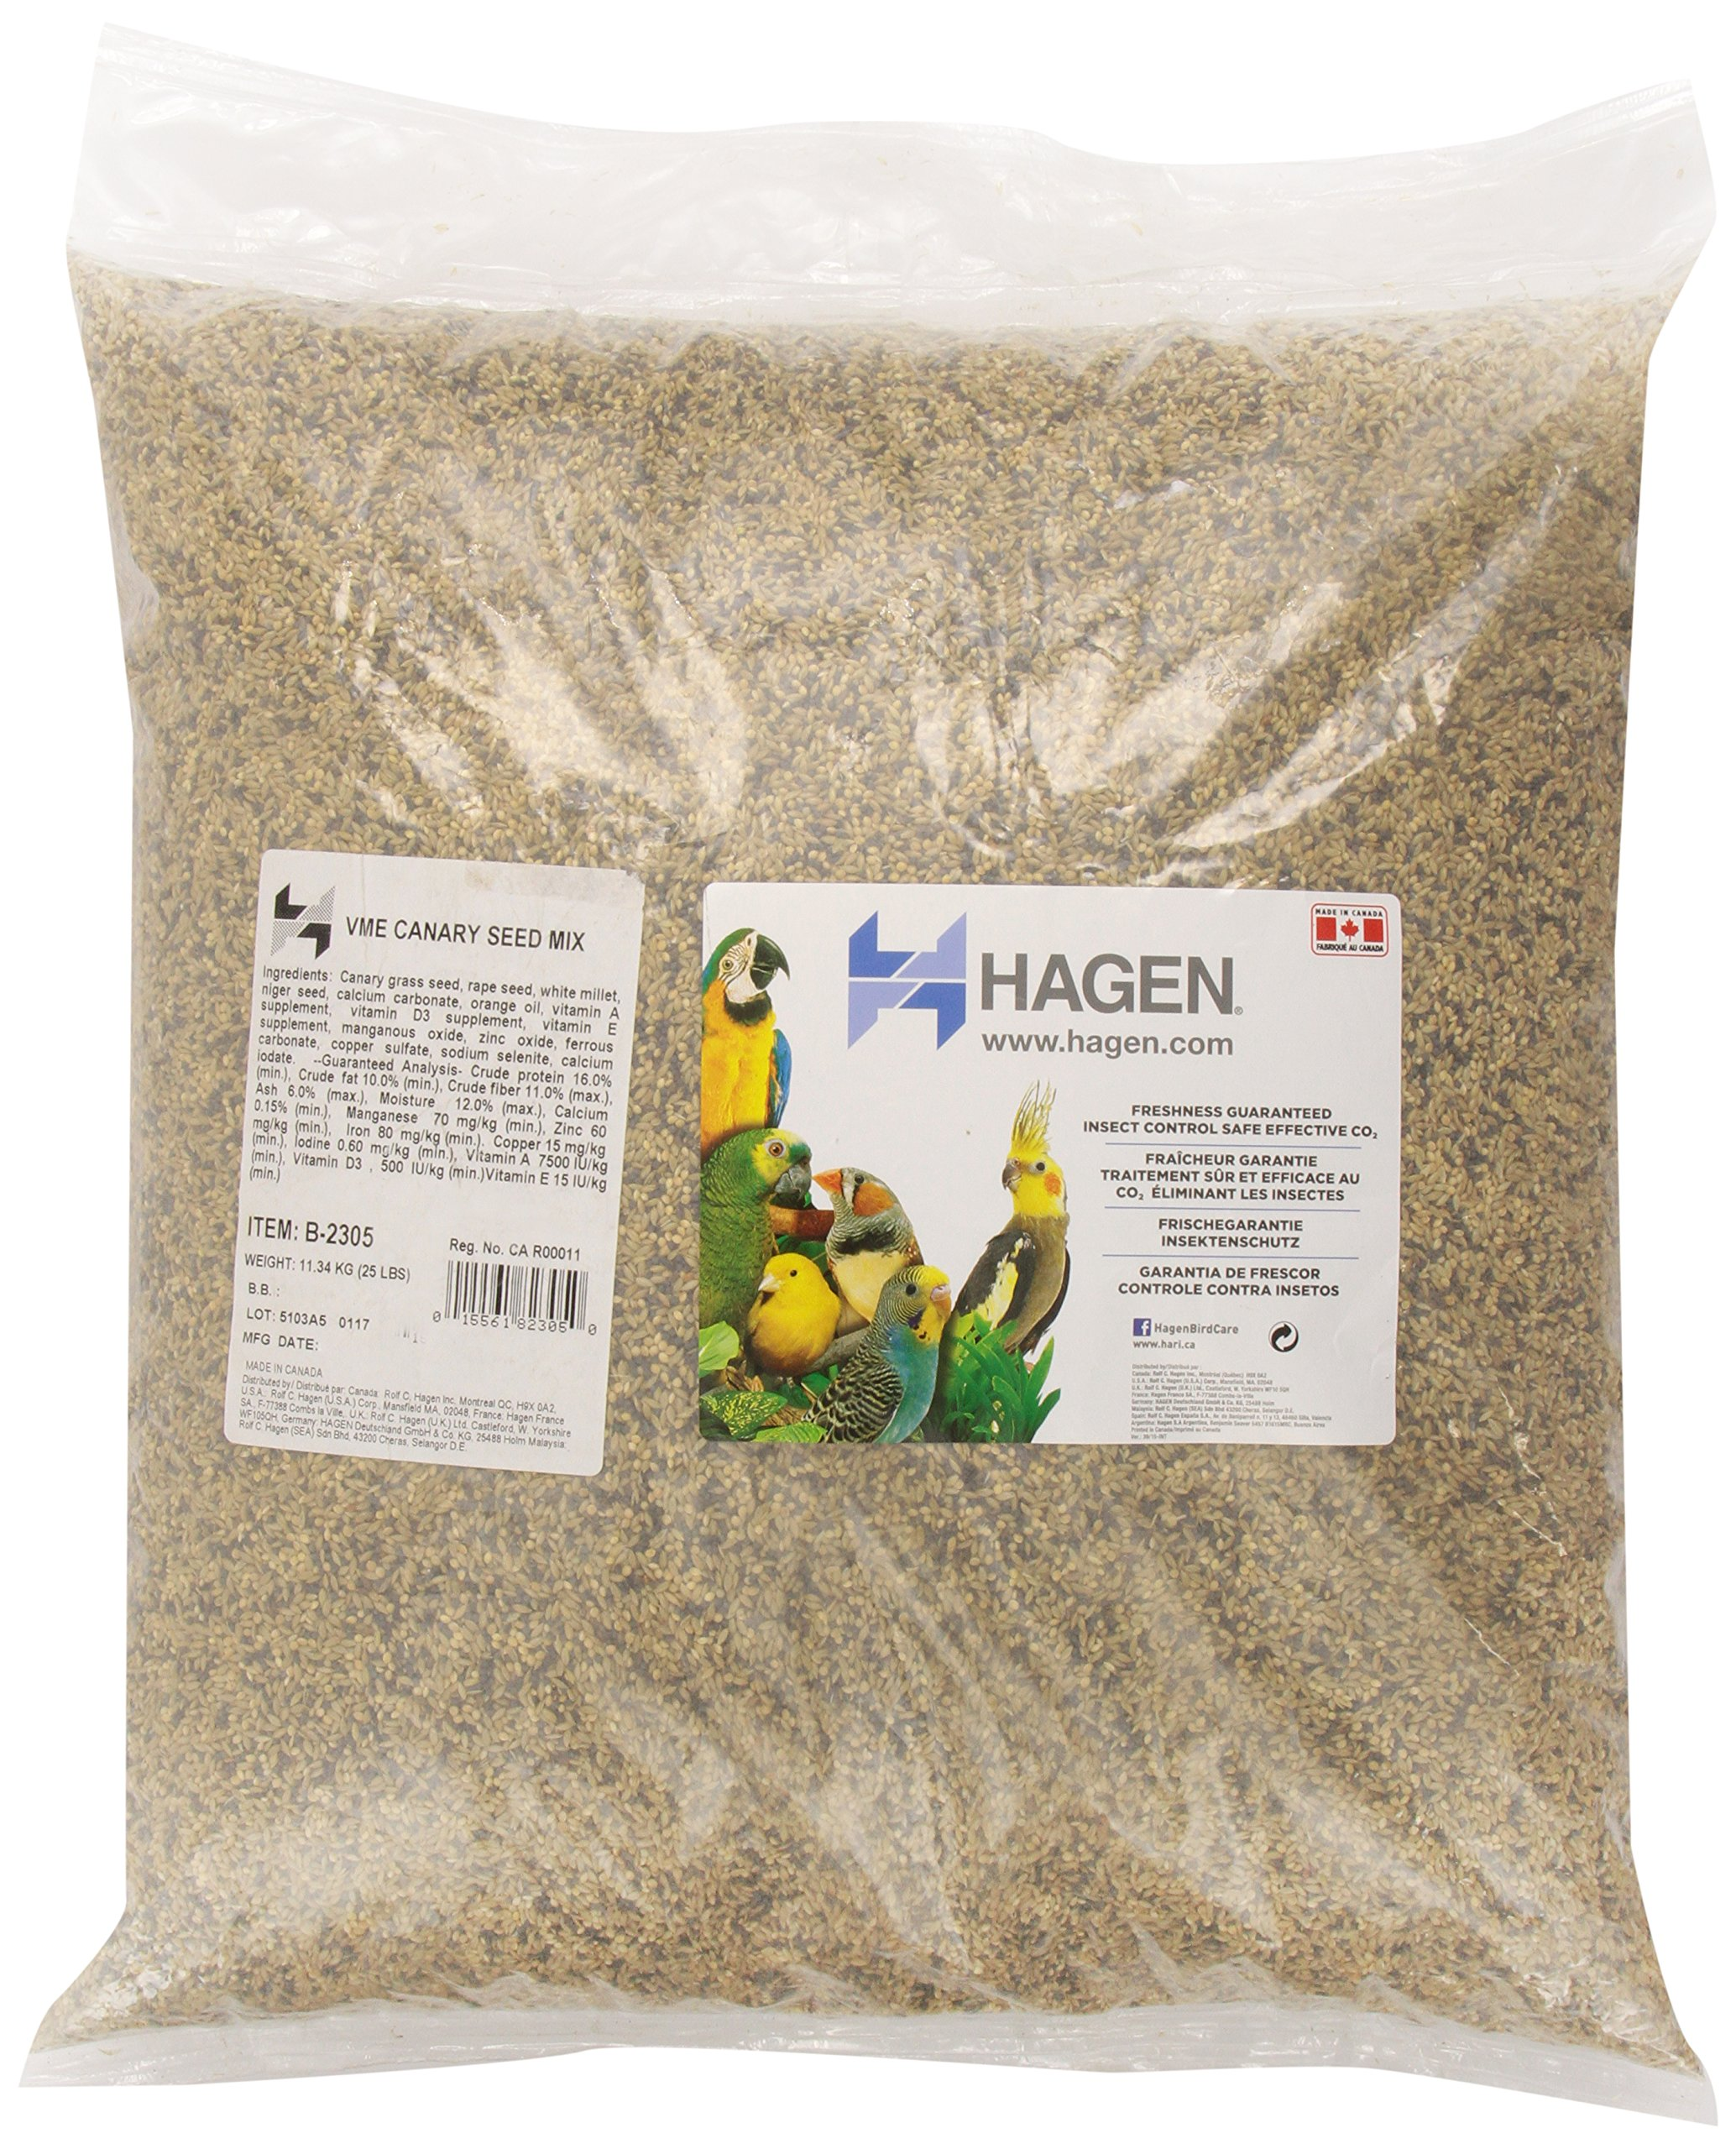 Canary Staple Vme Seed, 25-Pound